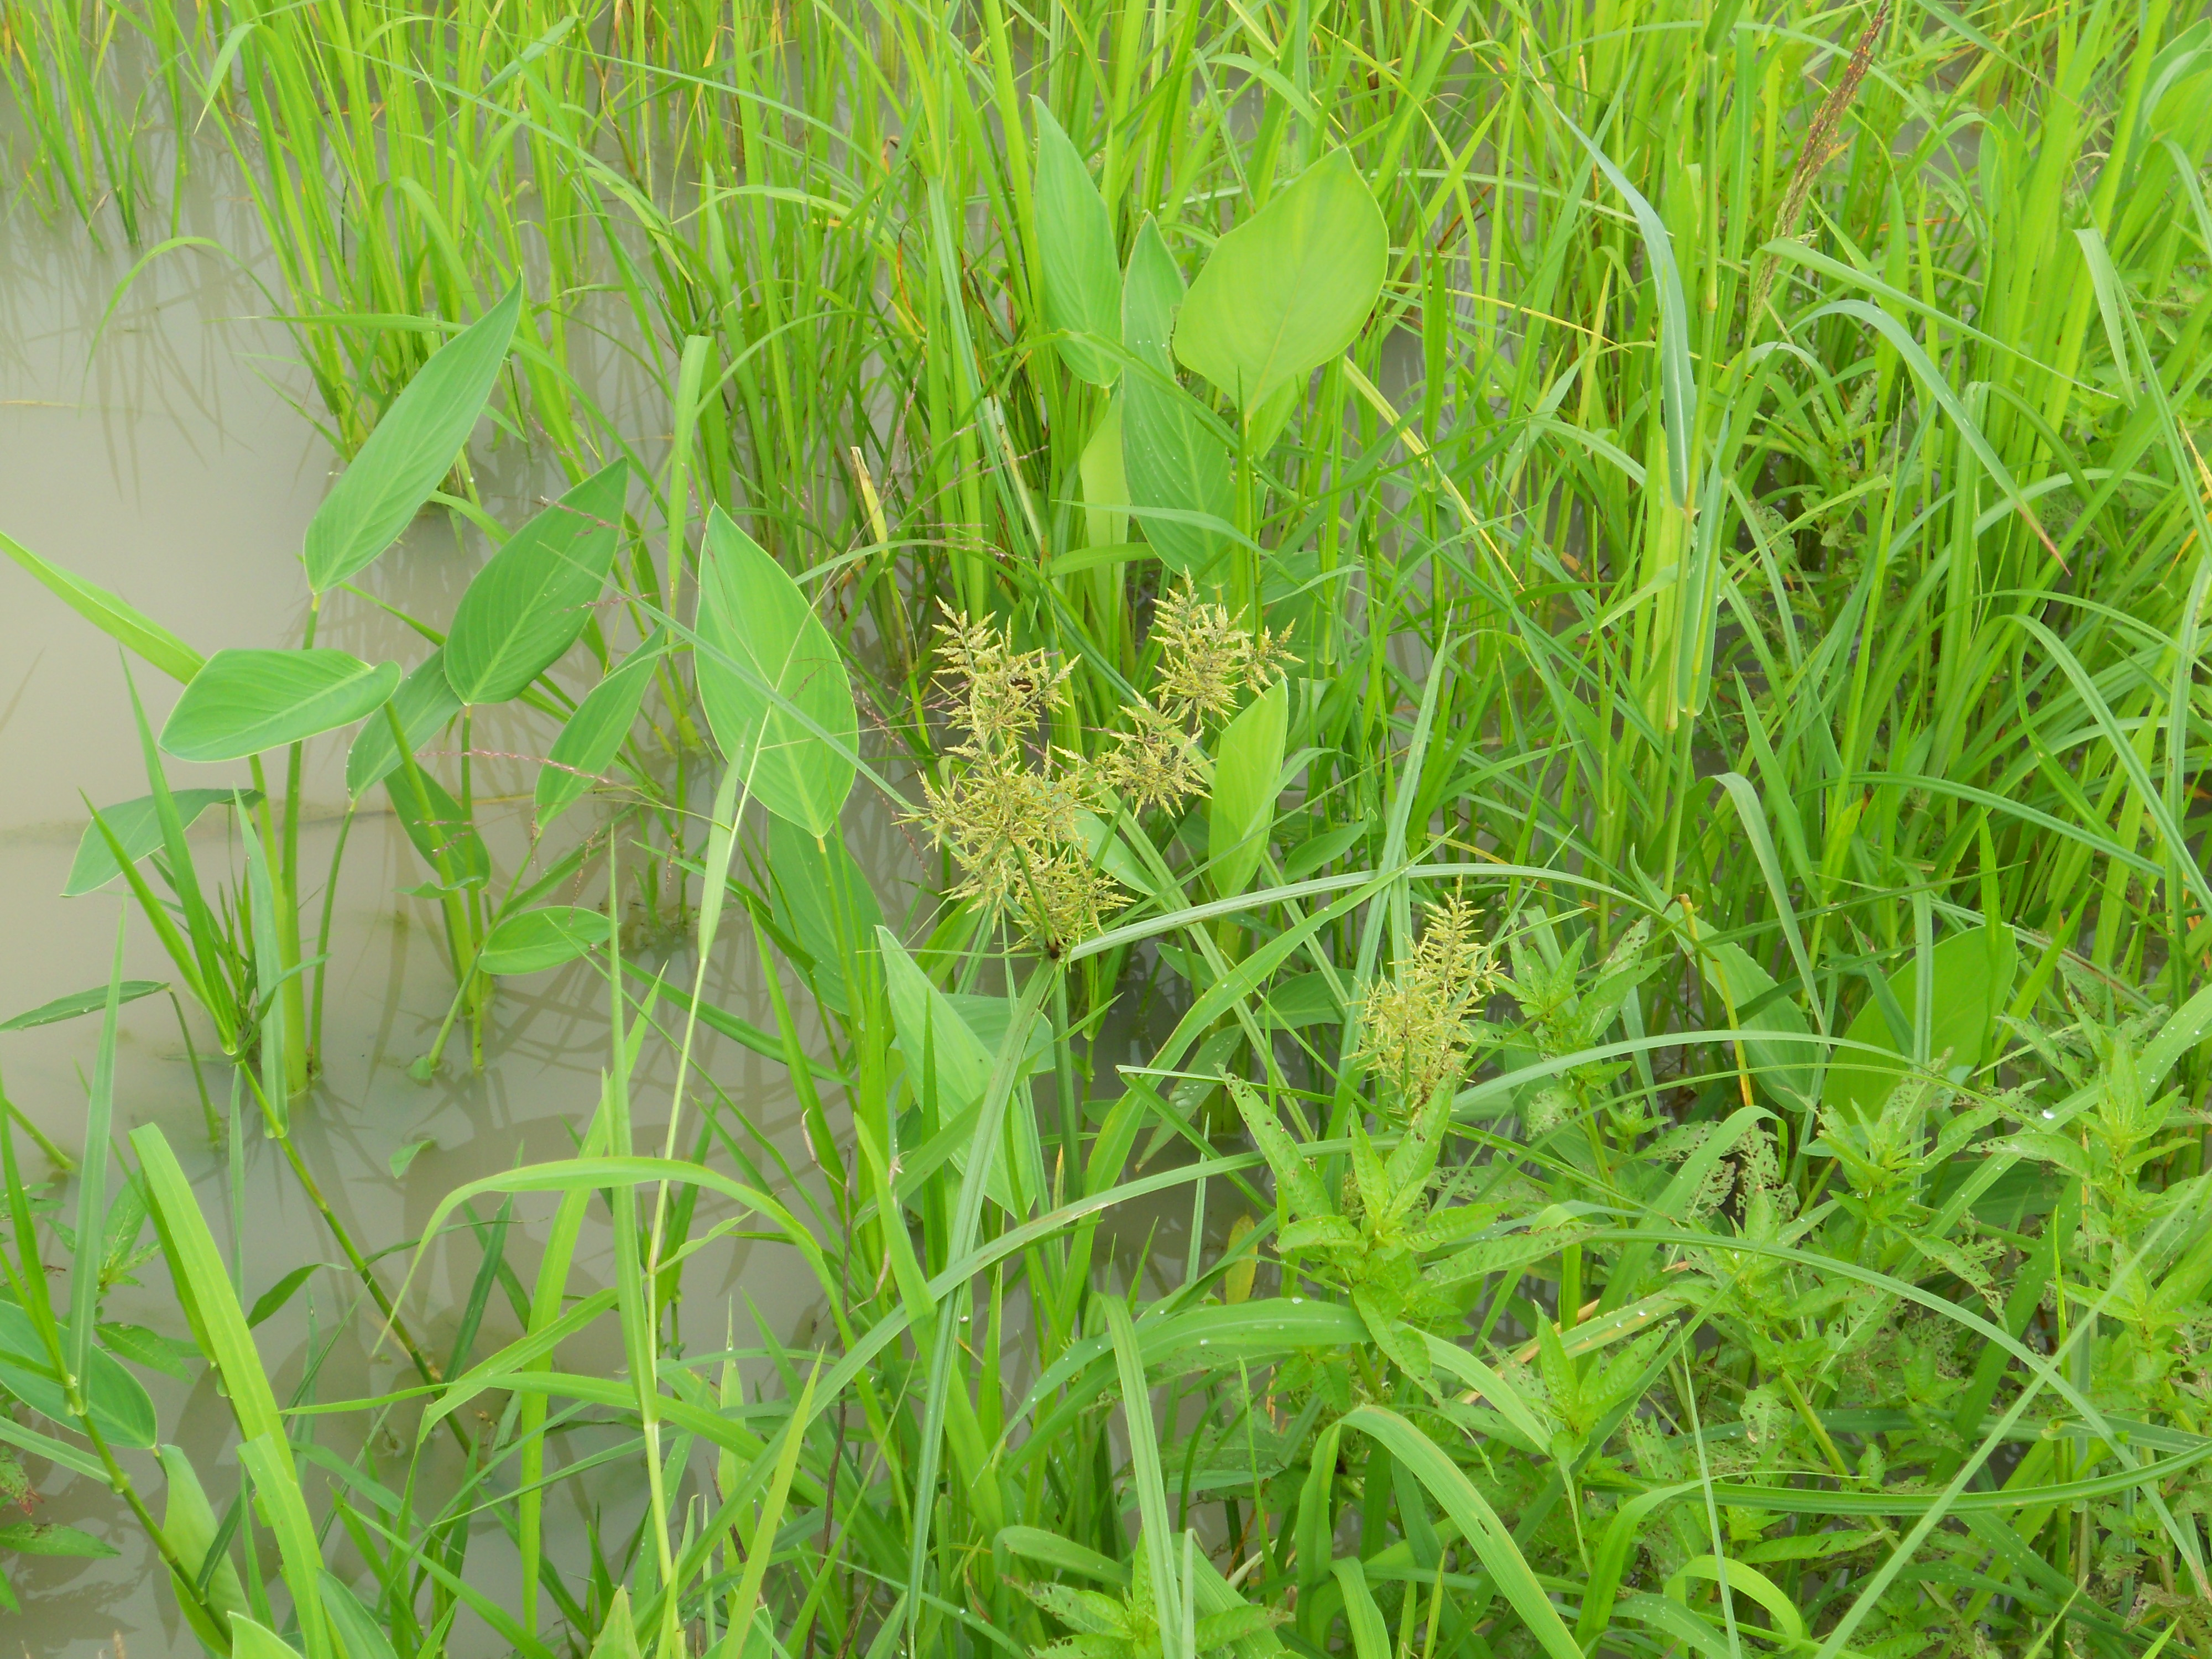 Plant growing in rice field